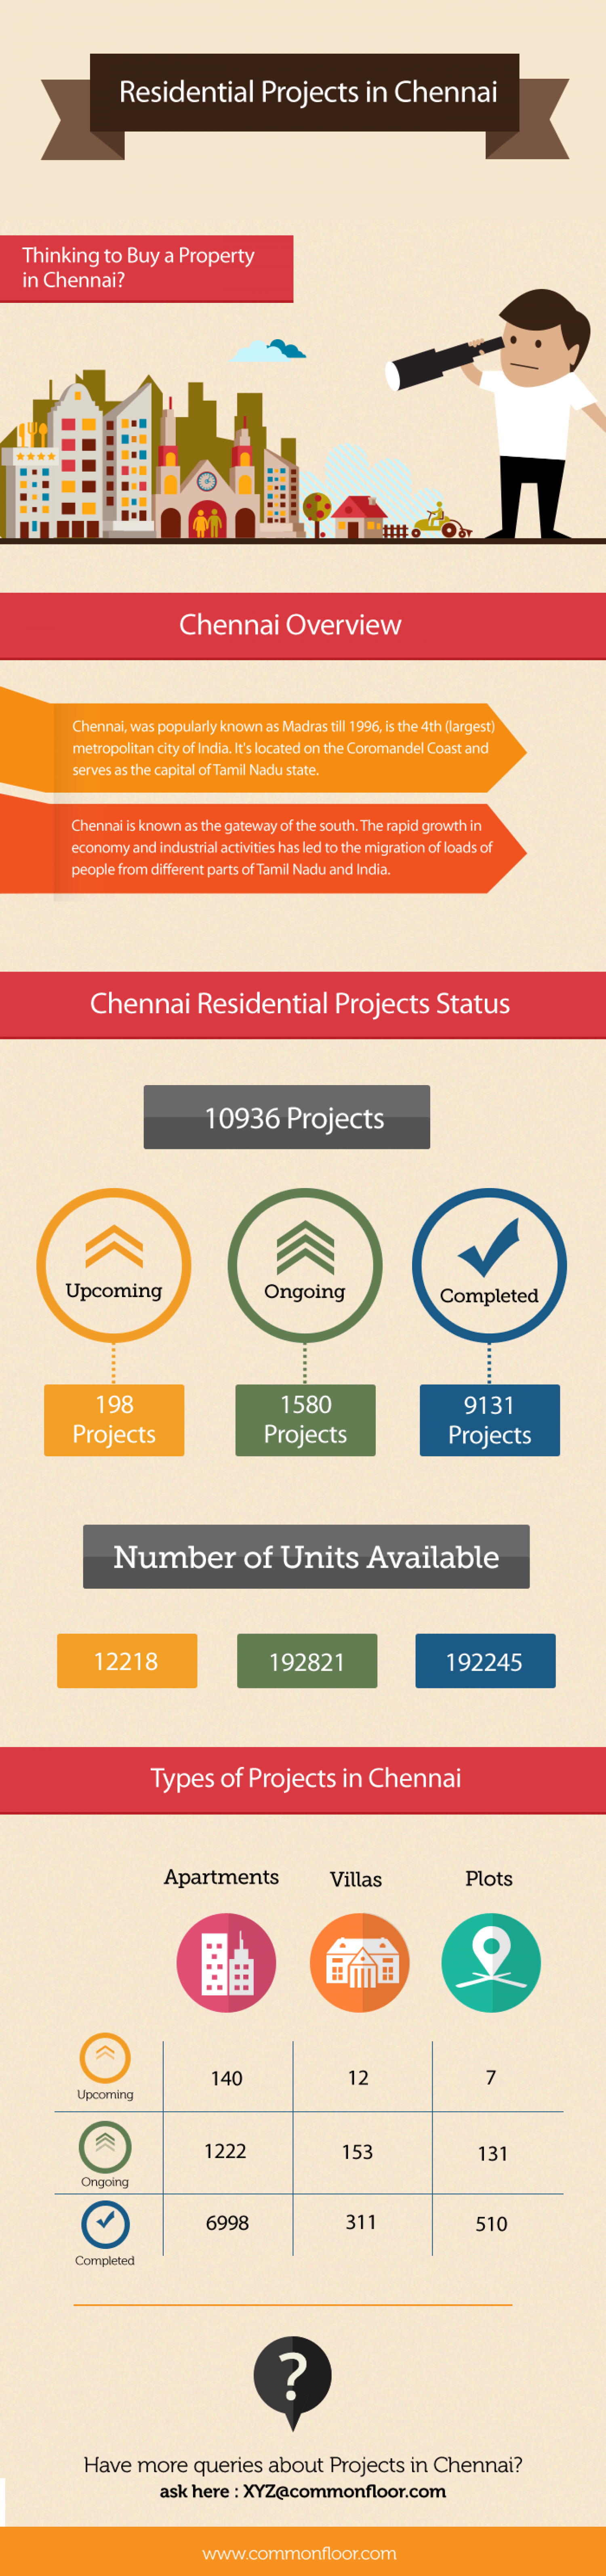 Residential Projects in Chennai Infographic